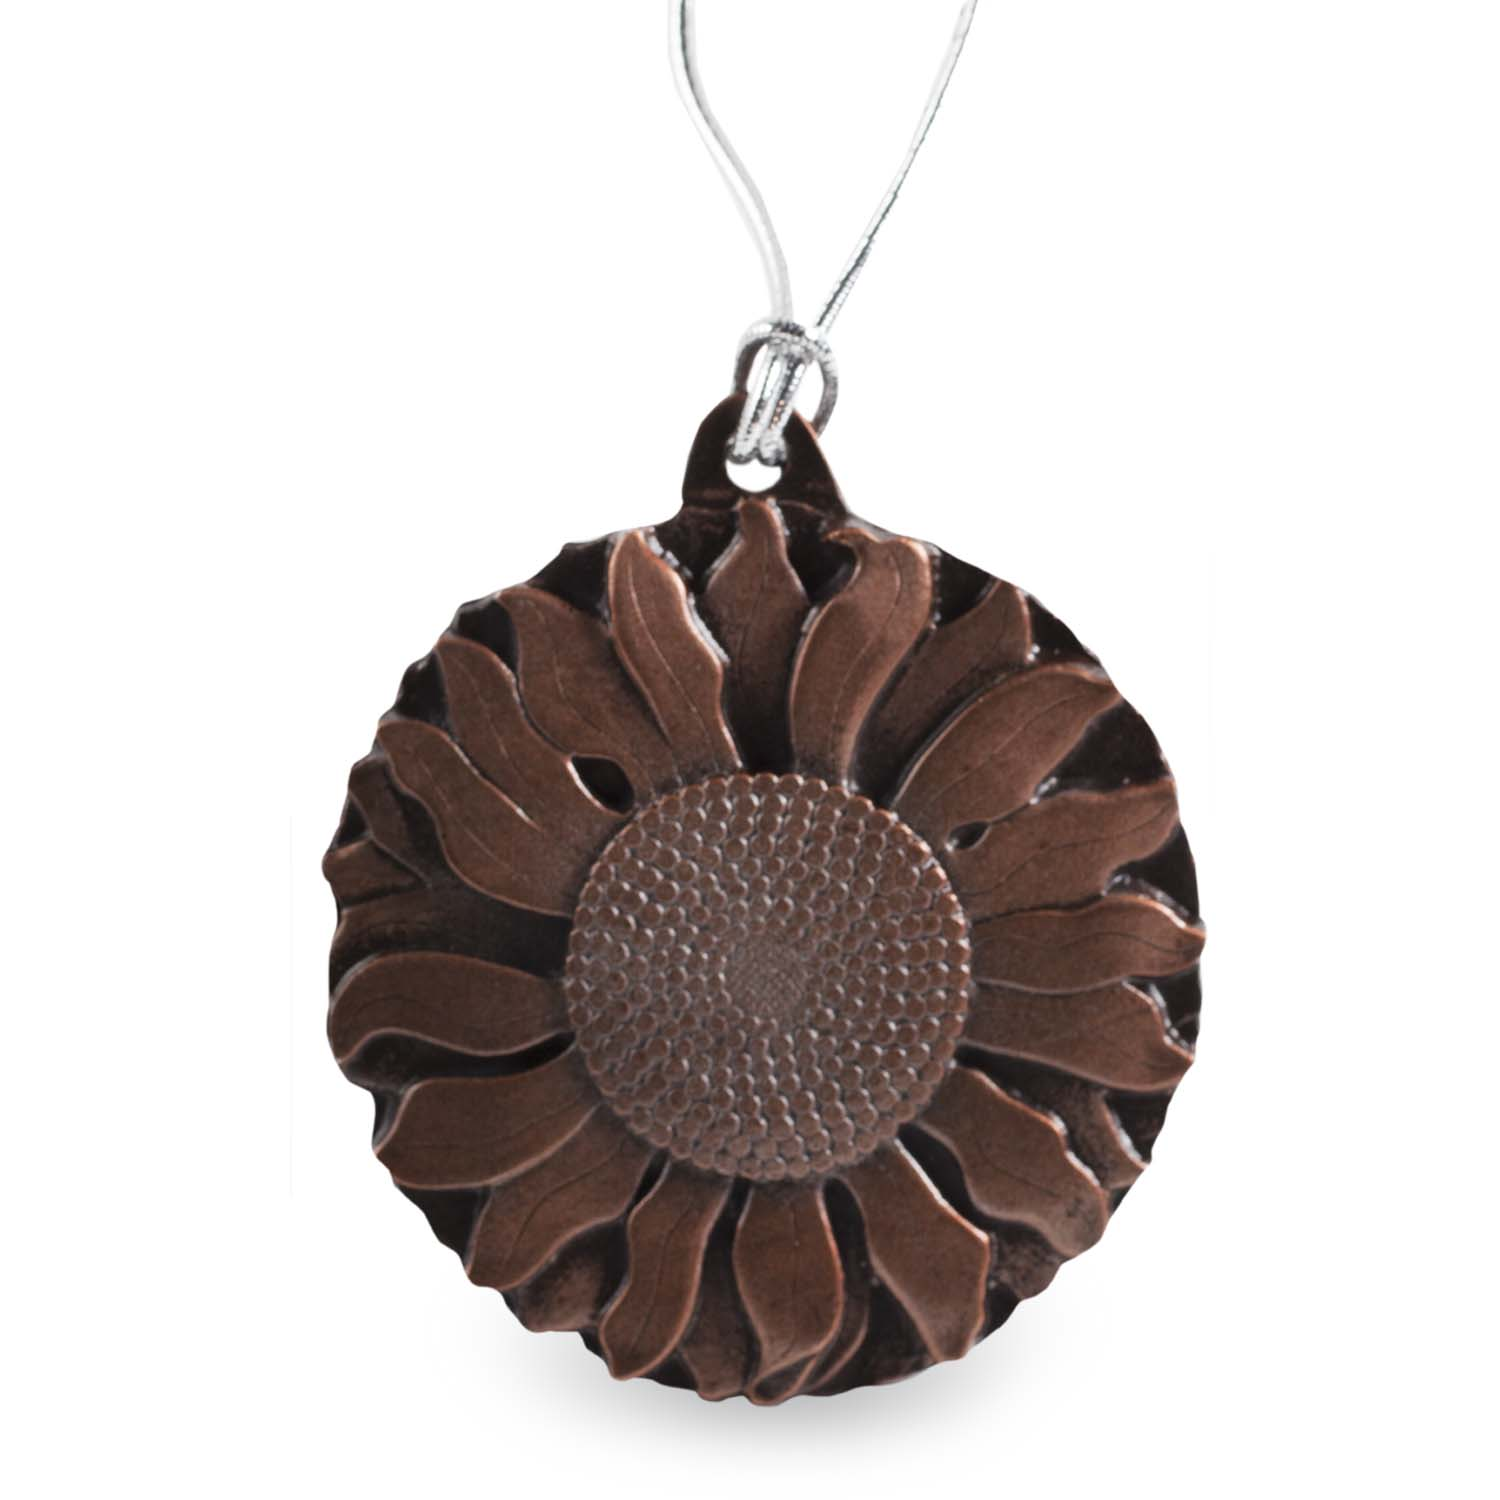 Antique Copper Sunflower Ornament (2017)